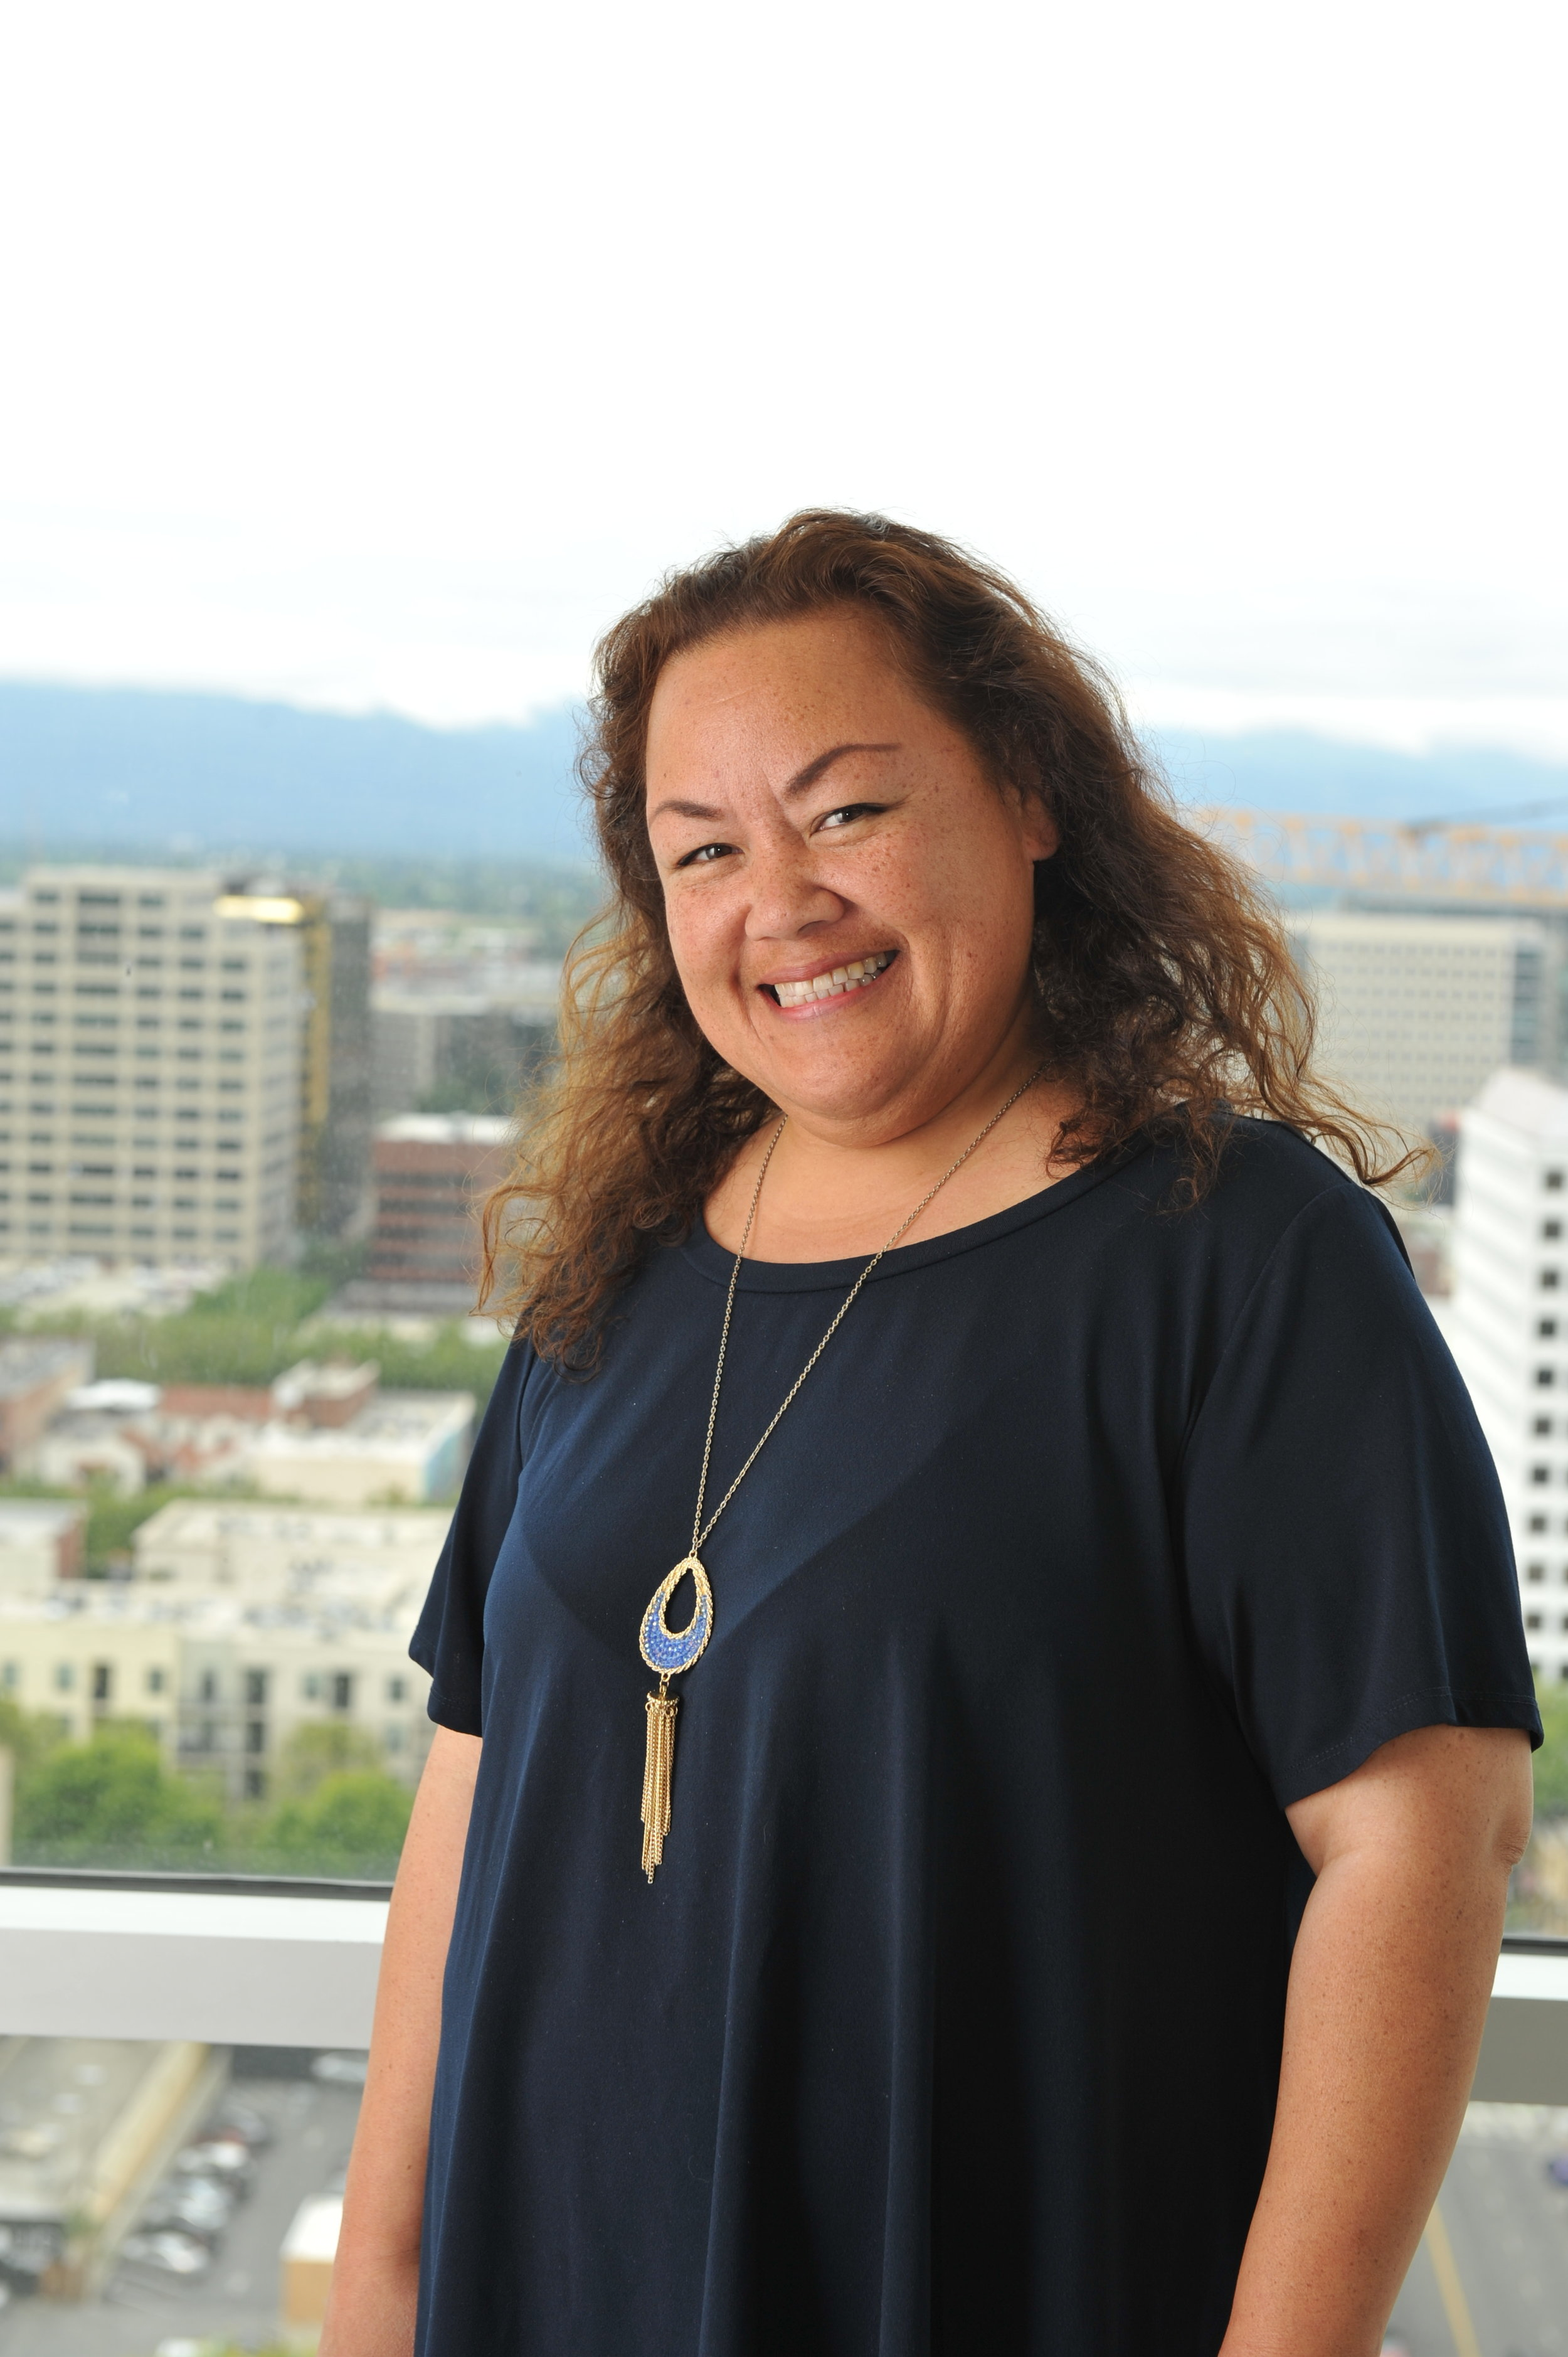 Mary Fanua: Executive Assistant   Assignments: Reception, Scheduling, Grants/Sponsorship Requests    mary.fanua@sanjoseca.gov   About Mary